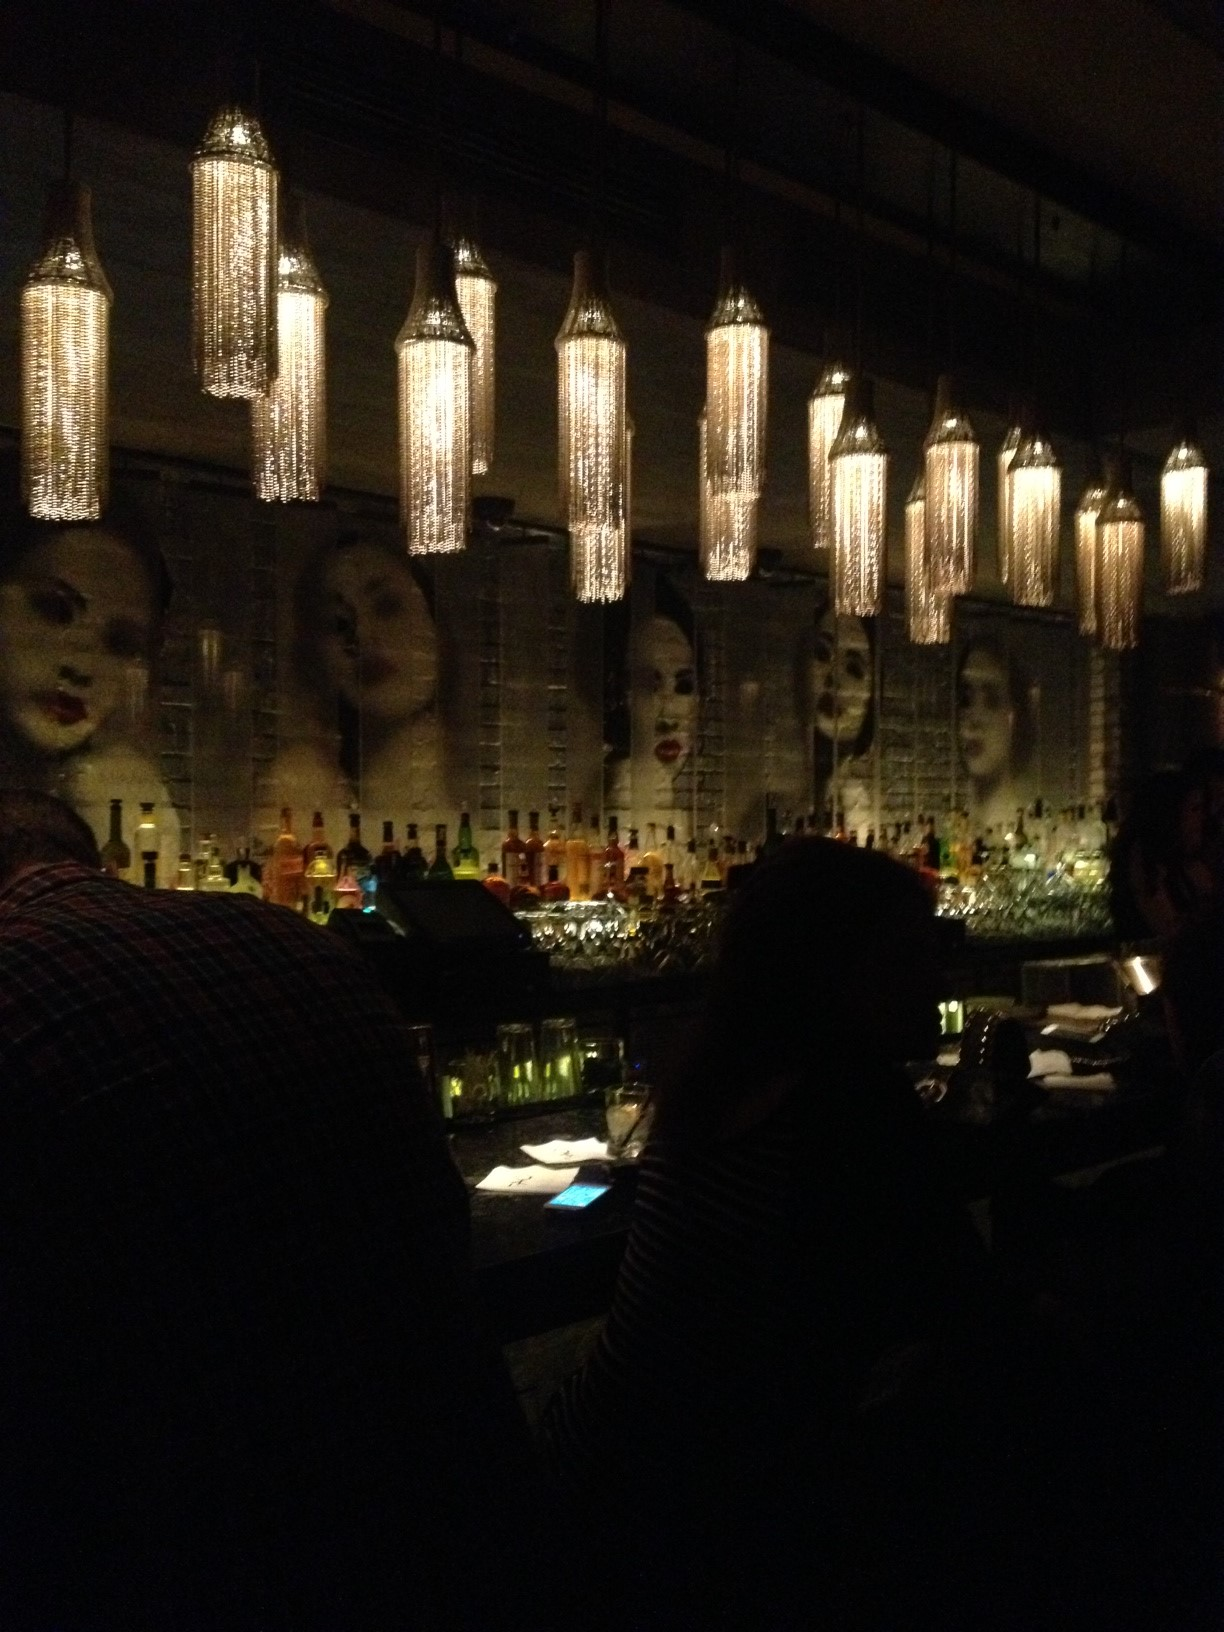 The Back Bar - The Geishas are Ready for You!